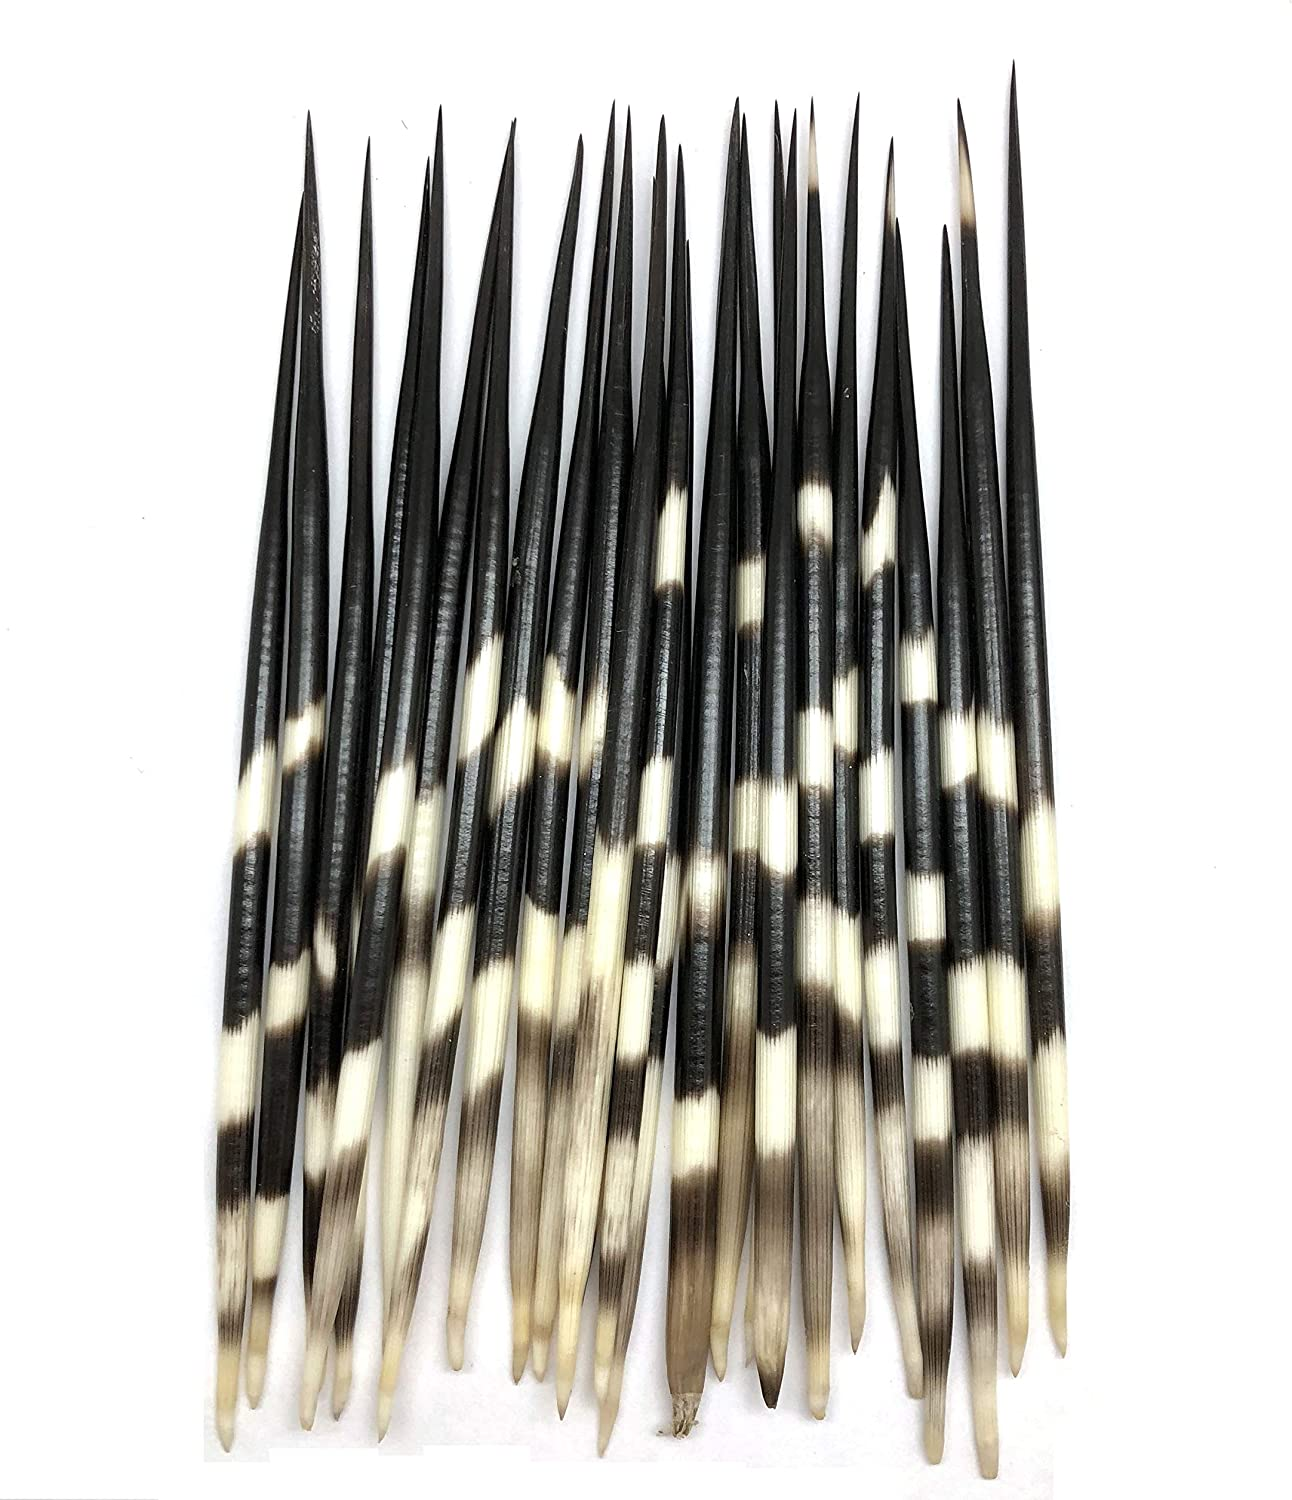 4 Inch ~ 6 Inch PEPPERLONELY 10PC South Africa Porcupine Quills